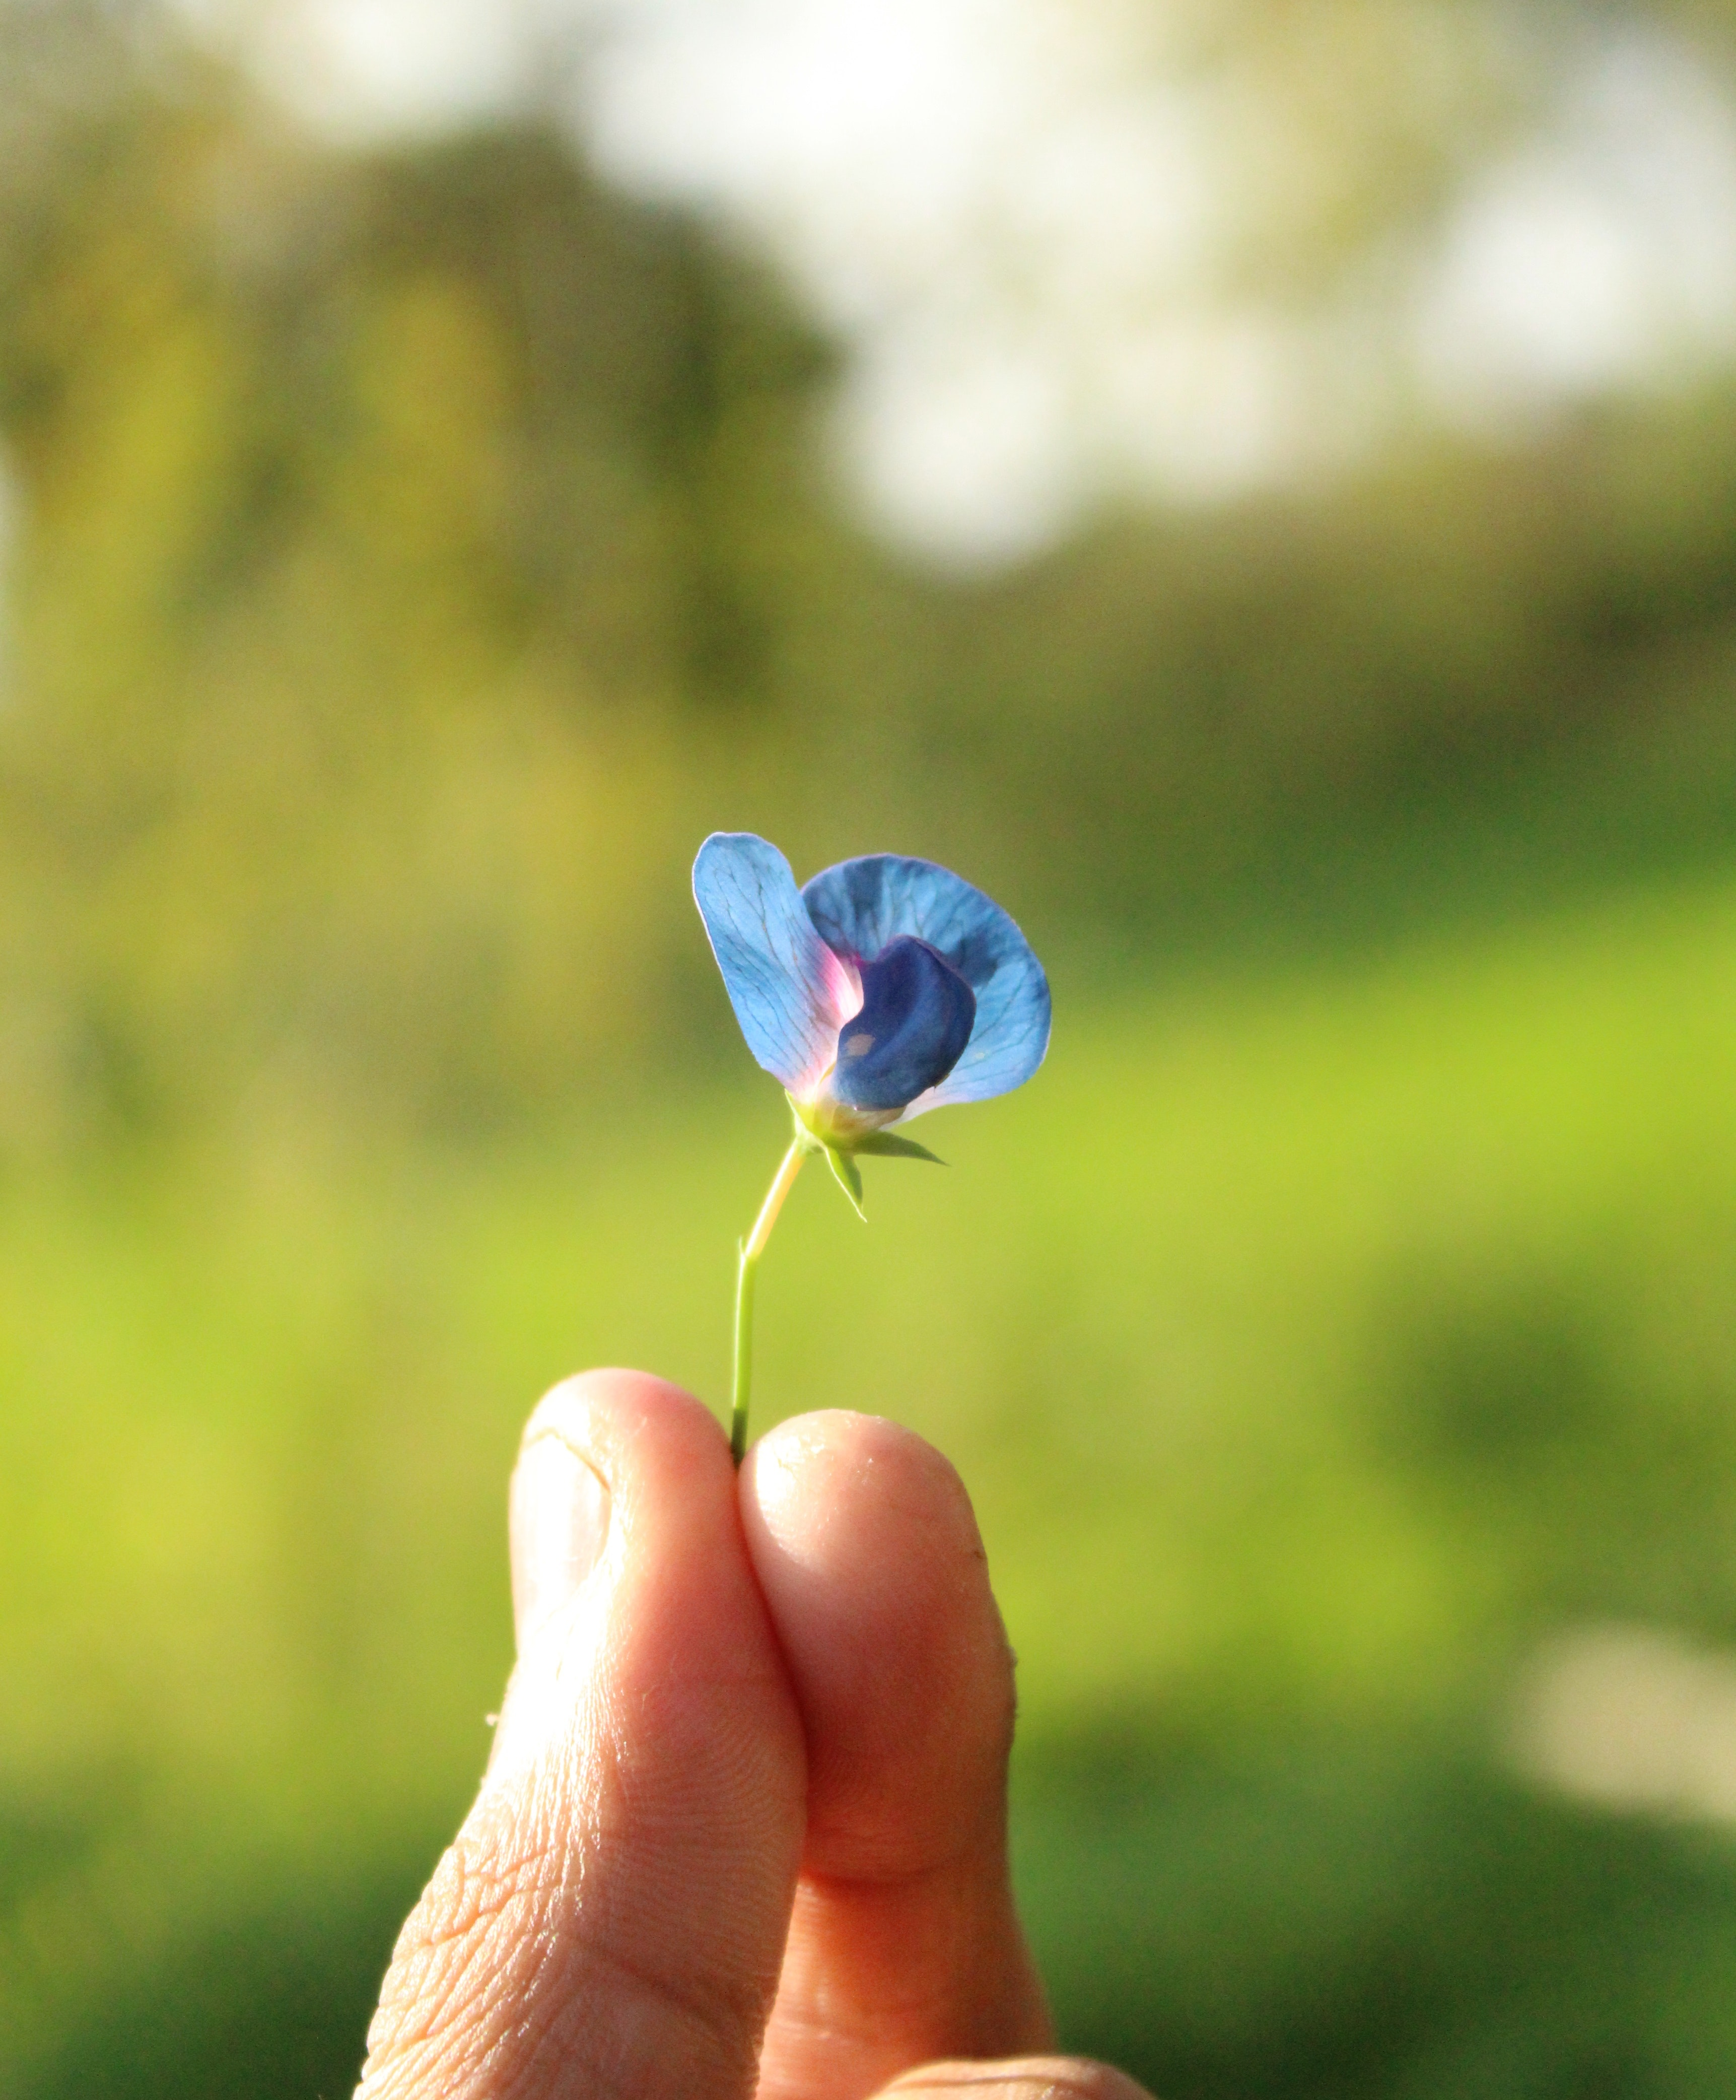 Free photo small blue petaled flower held by persons fingers small blue petaled flower held by persons fingers izmirmasajfo